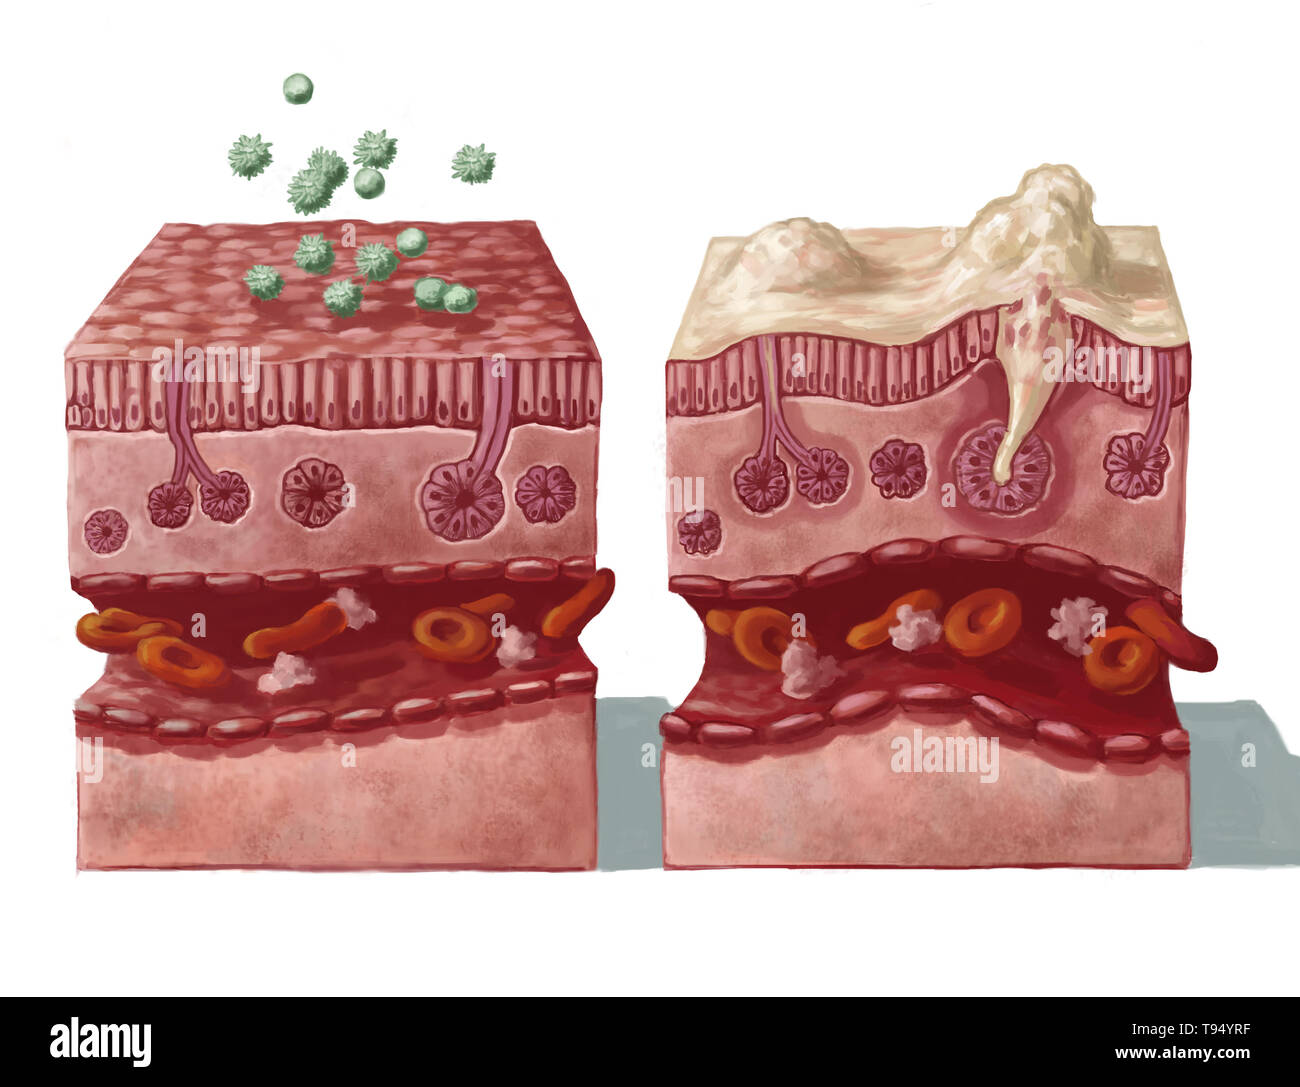 Illustration of a healthy nasal mucous membrane coming into contact with allergens (on the left) and the reaction that follows infection (on the right): overproduction of mucus, destruction of the mucous membrane epithelial, dilation of blood vessels, immune reaction in the macrophages and lymphocytes as a result of inflammation. - Stock Image